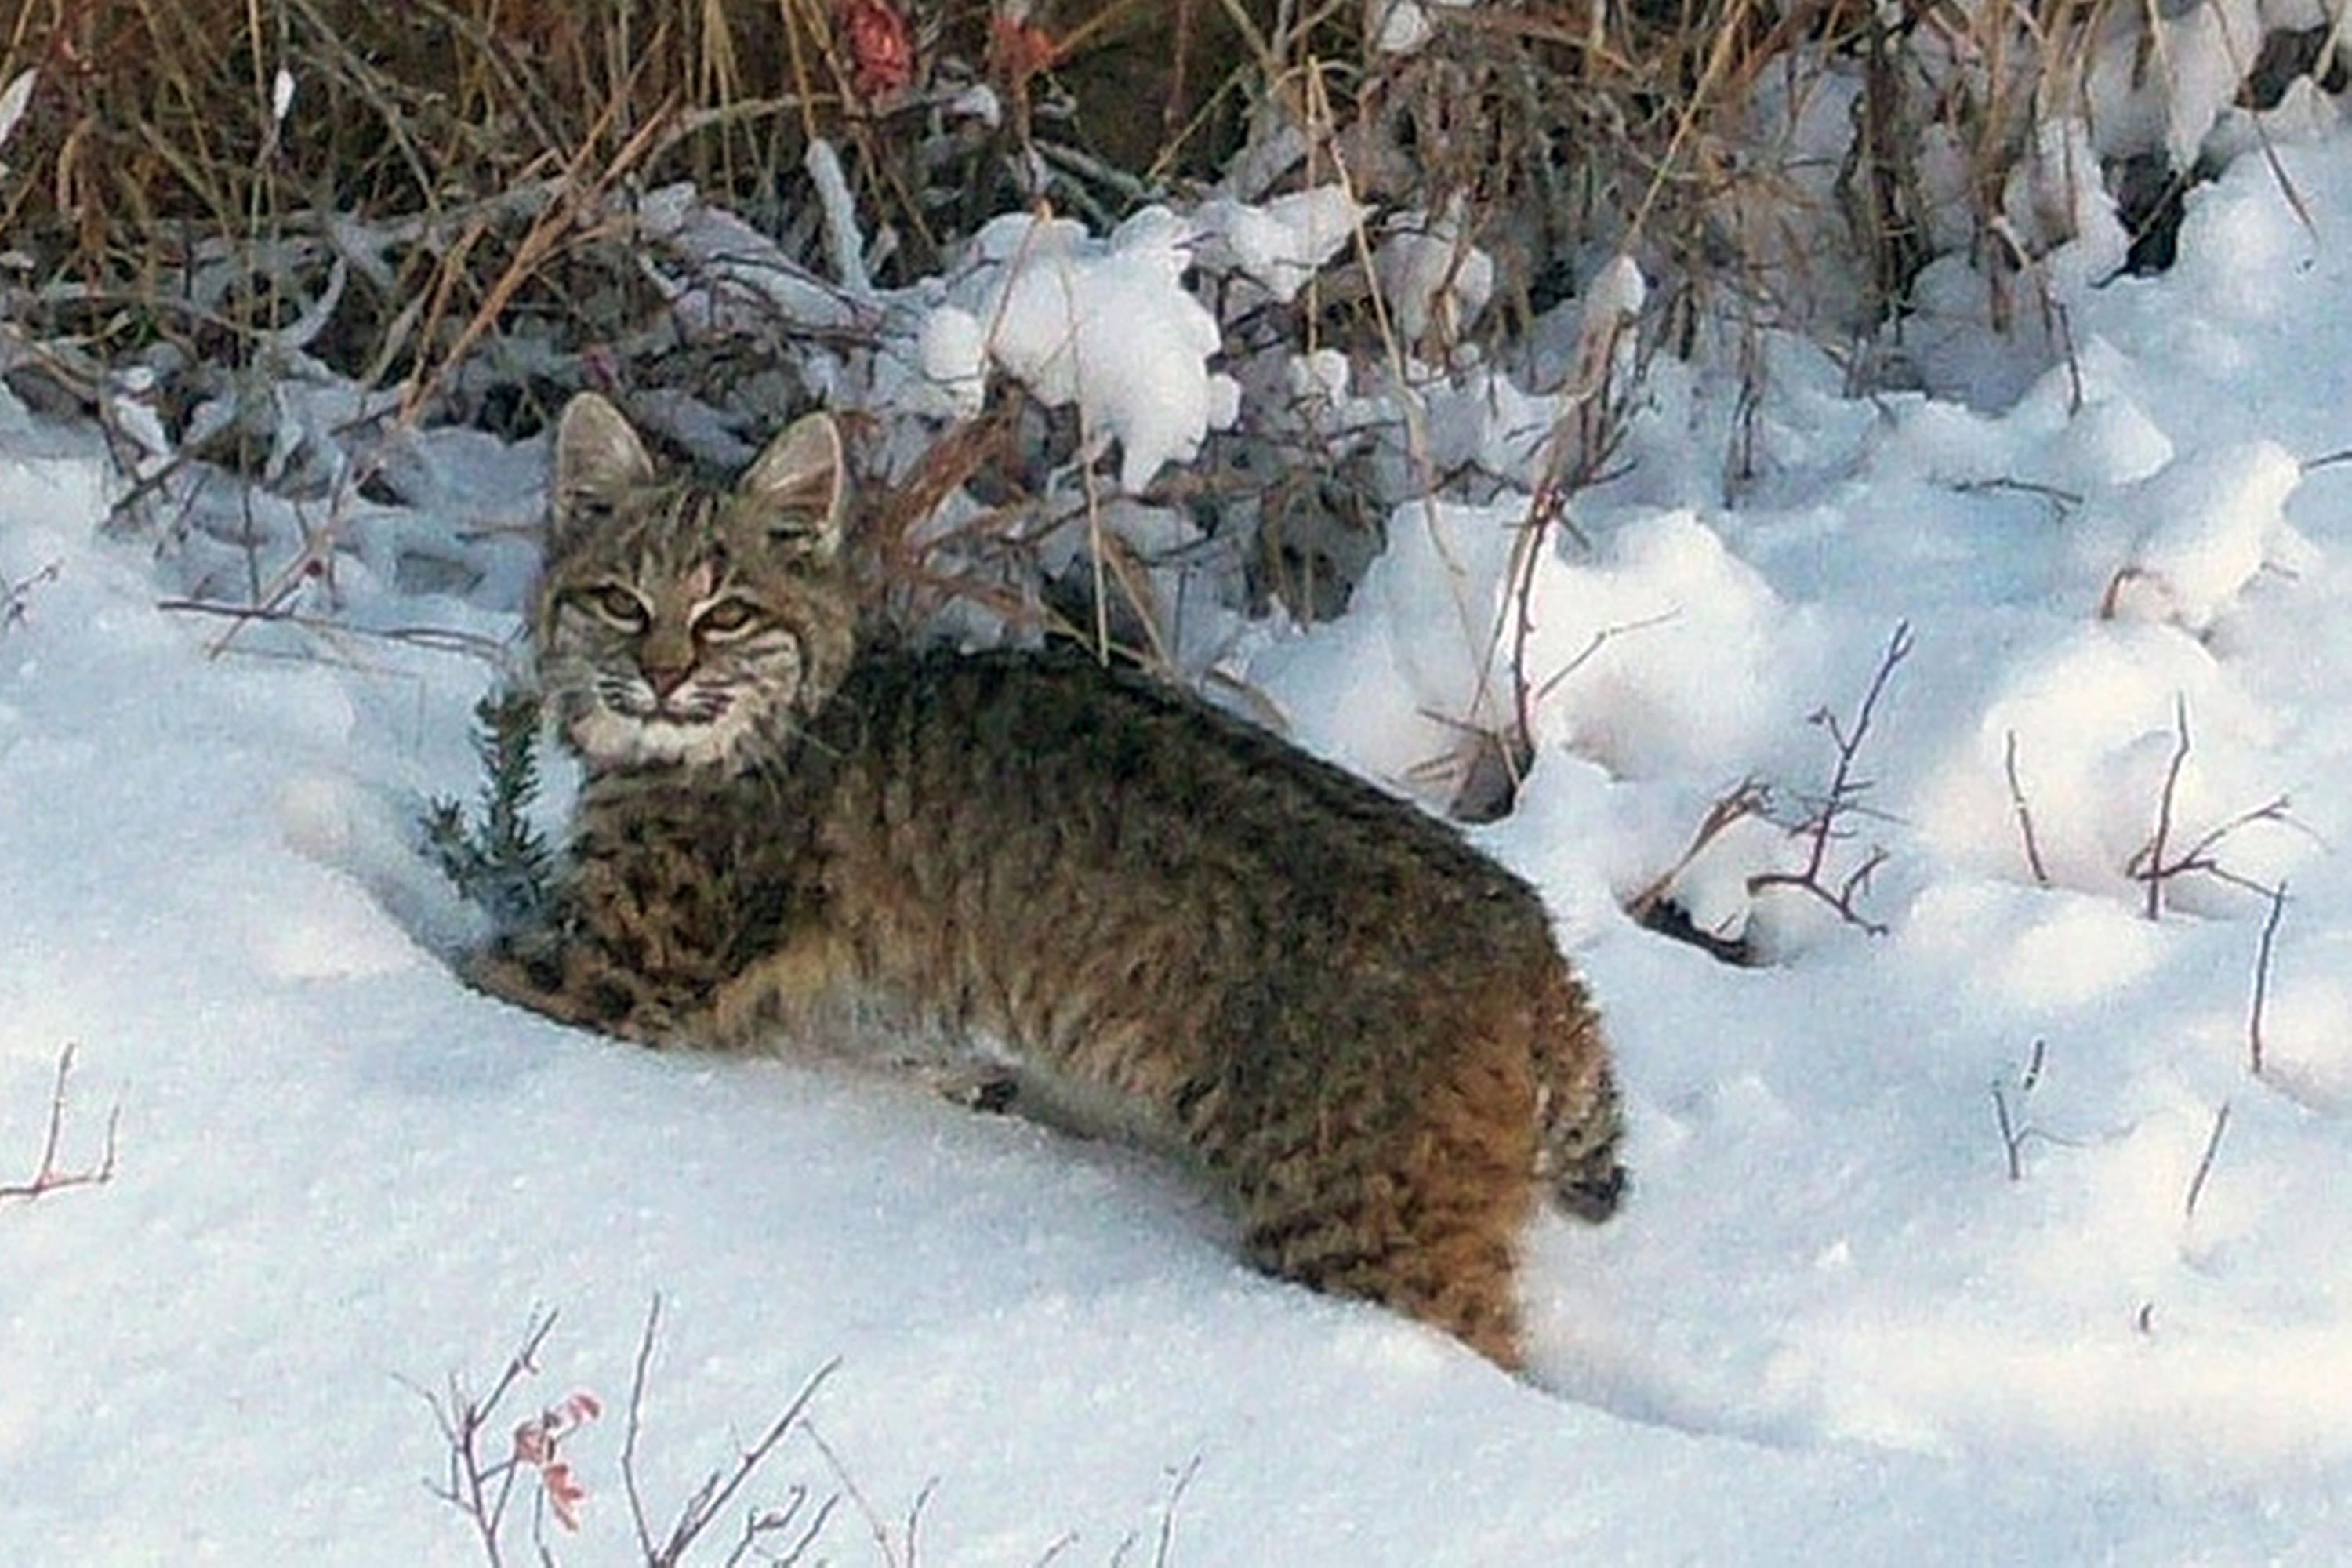 <p>This Oct. 20, 2010 photo provided by the U.S. Fish and Wildlife Service shows a bobcat making its way through the snow in northern New Mexico. </p>